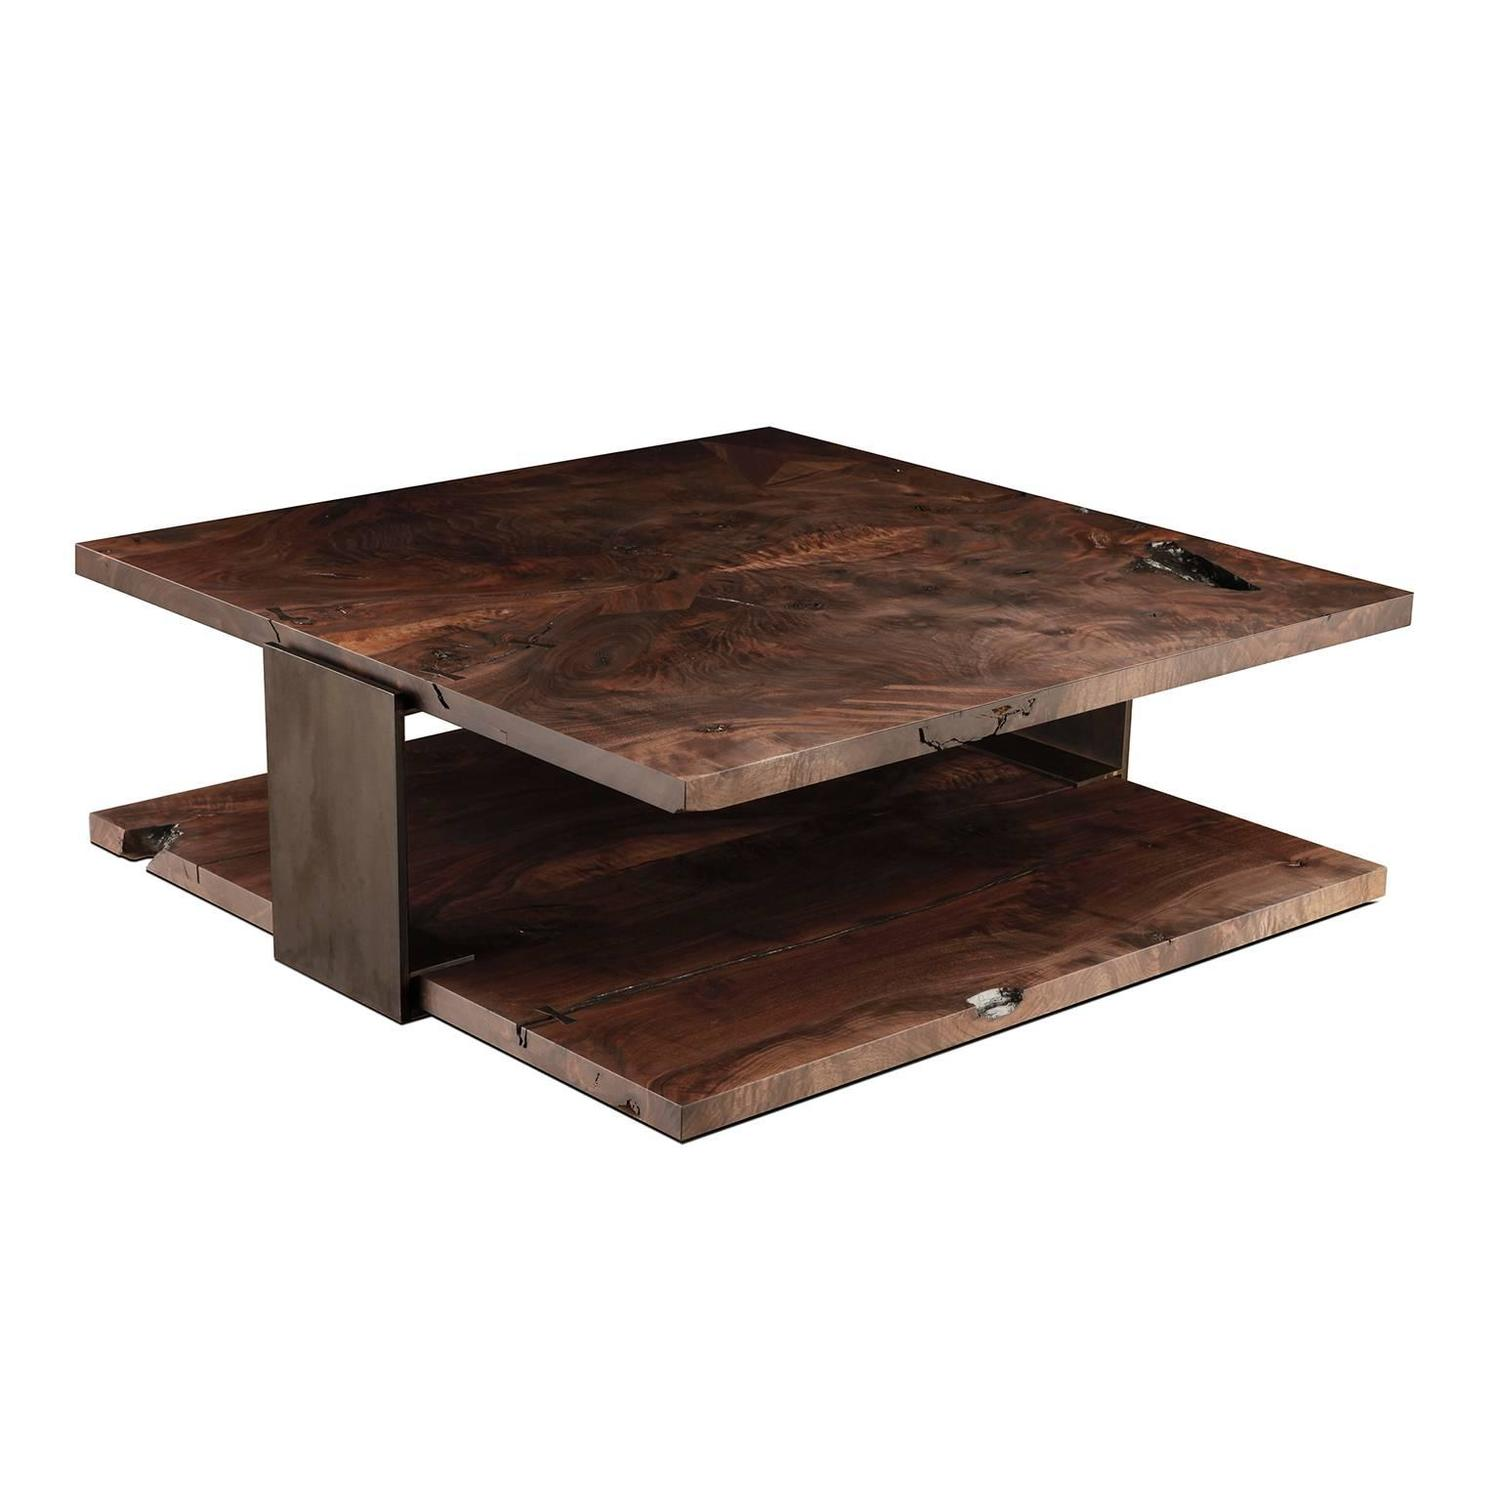 Walnut Coffee and Cocktail Tables 1 020 For Sale at 1stdibs